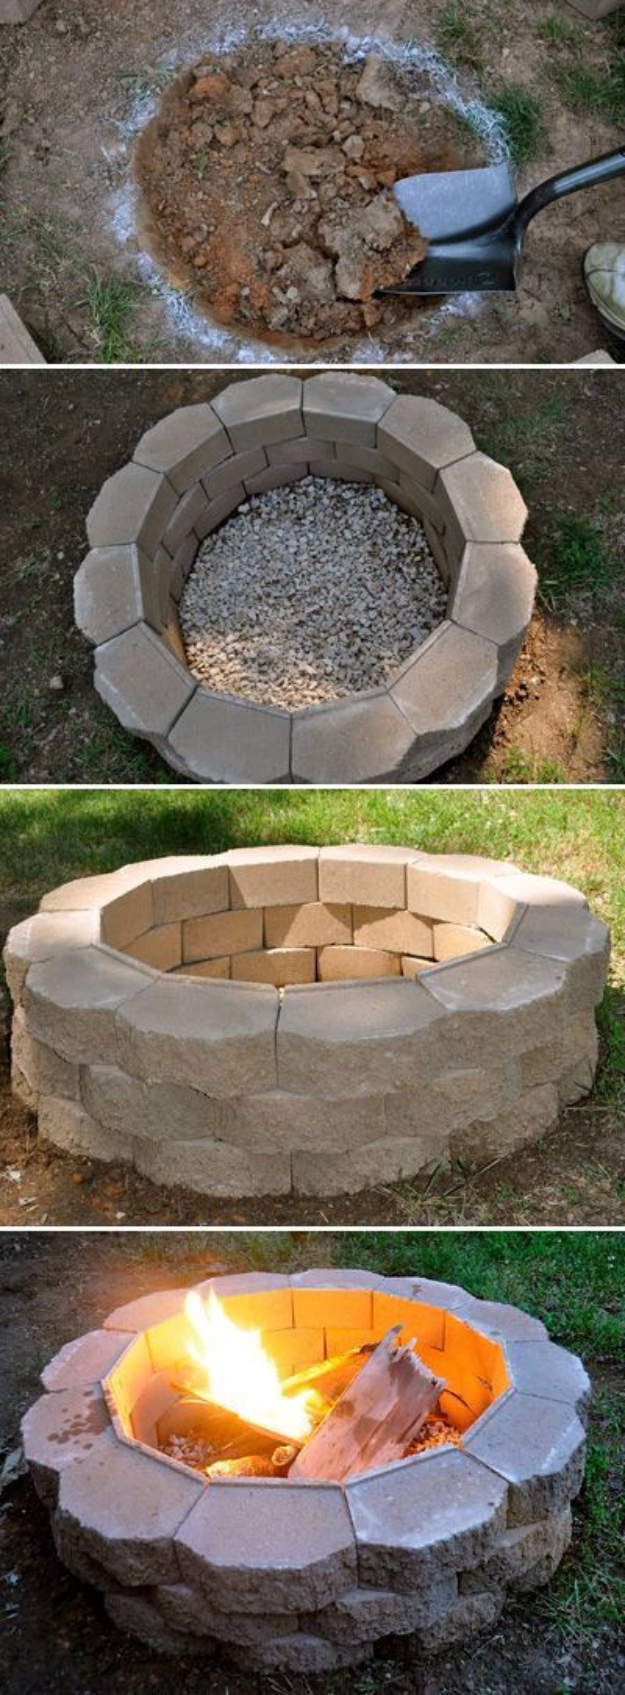 DIY Fireplace Ideas - DIY Fire Pit - Do It Yourself Firepit Projects and Fireplaces for Your Yard, Patio, Porch and Home. Outdoor Fire Pit Tutorials for Backyard with Easy Step by Step Tutorials - Cool DIY Projects for Men #diyideas #outdoors #diy